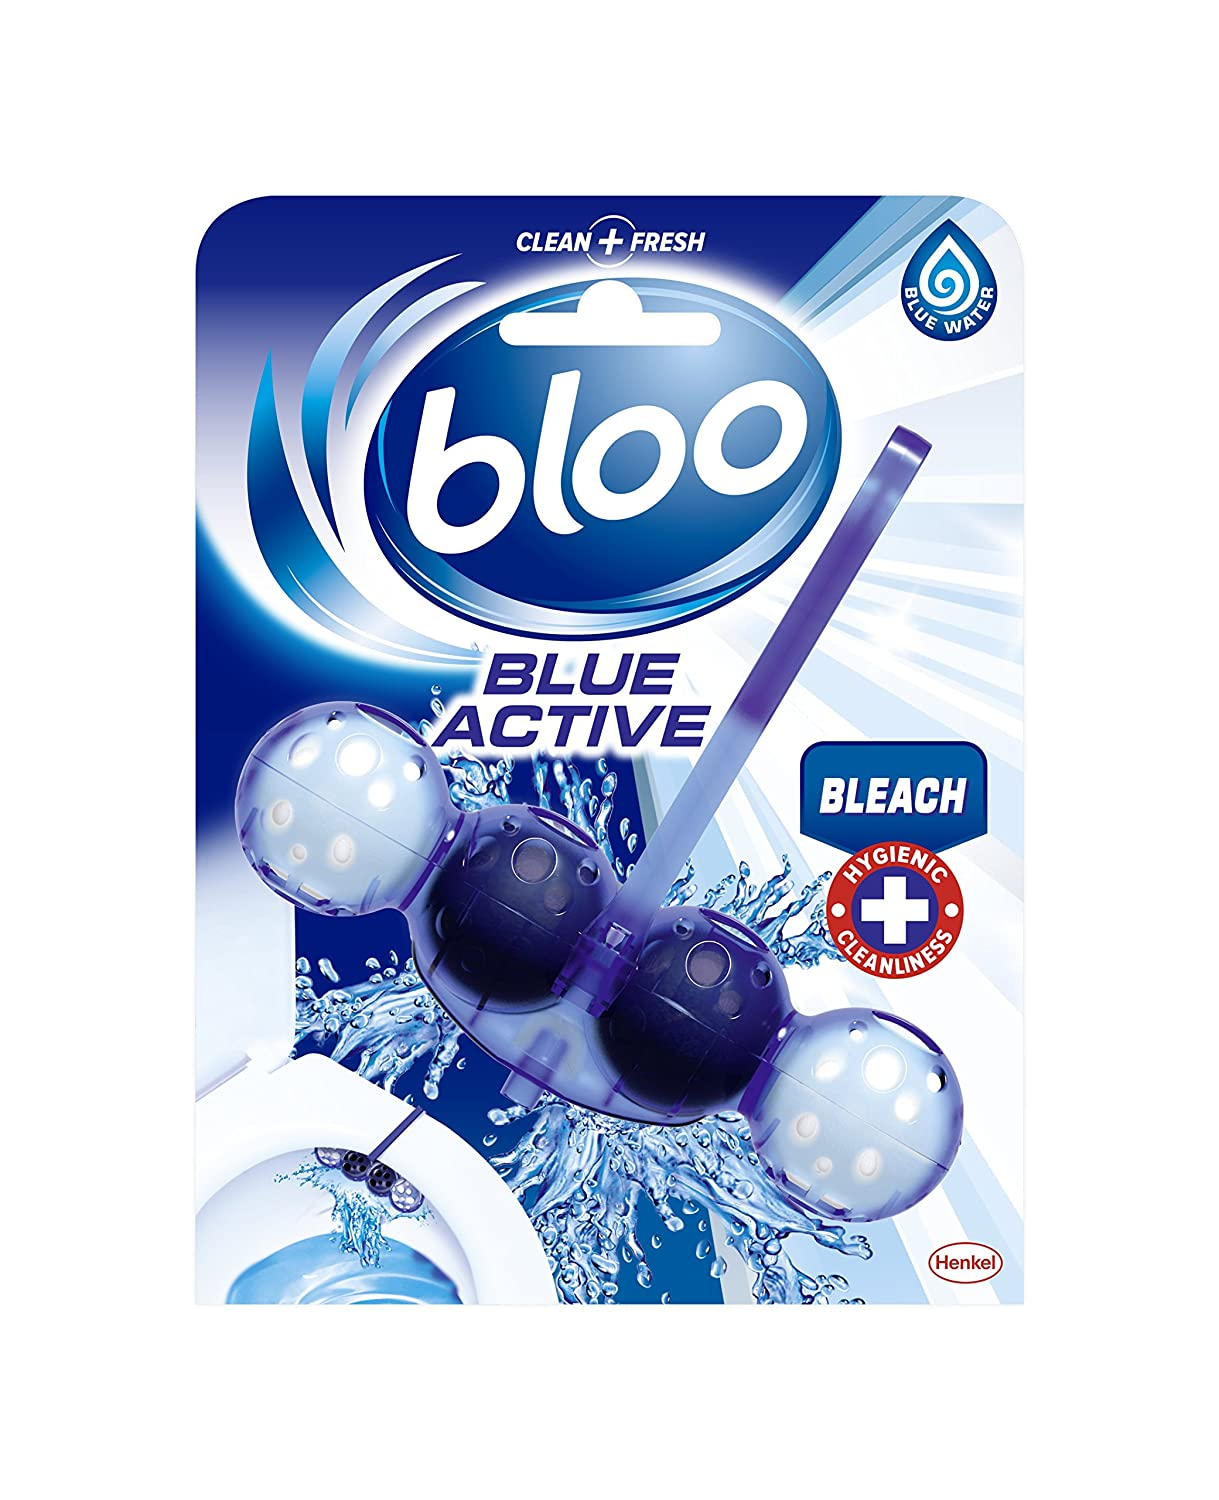 Bloo Blue Active Fresh Toilet Rim Block, 50 g, Flowers Henkel Ltd 2202348